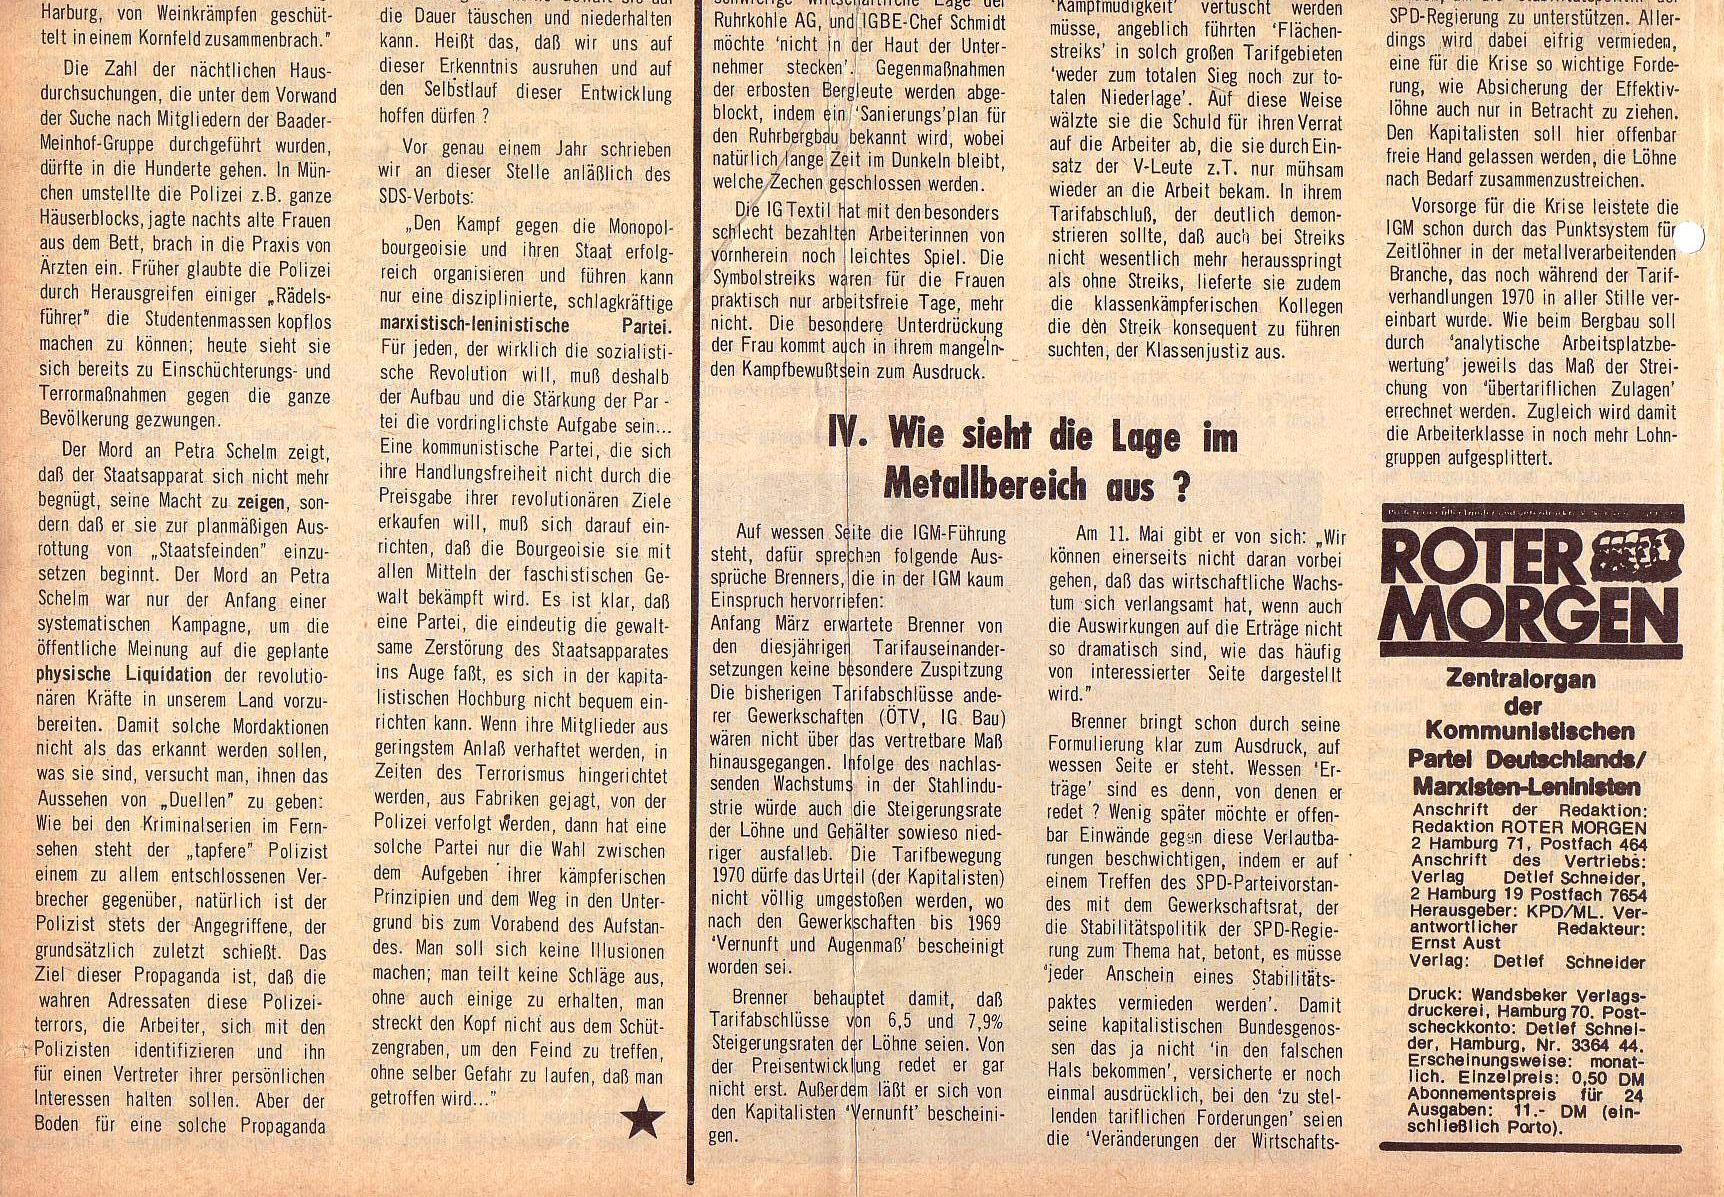 Roter Morgen, 5. Jg., August 1971, Nr. 8, Seite 2b